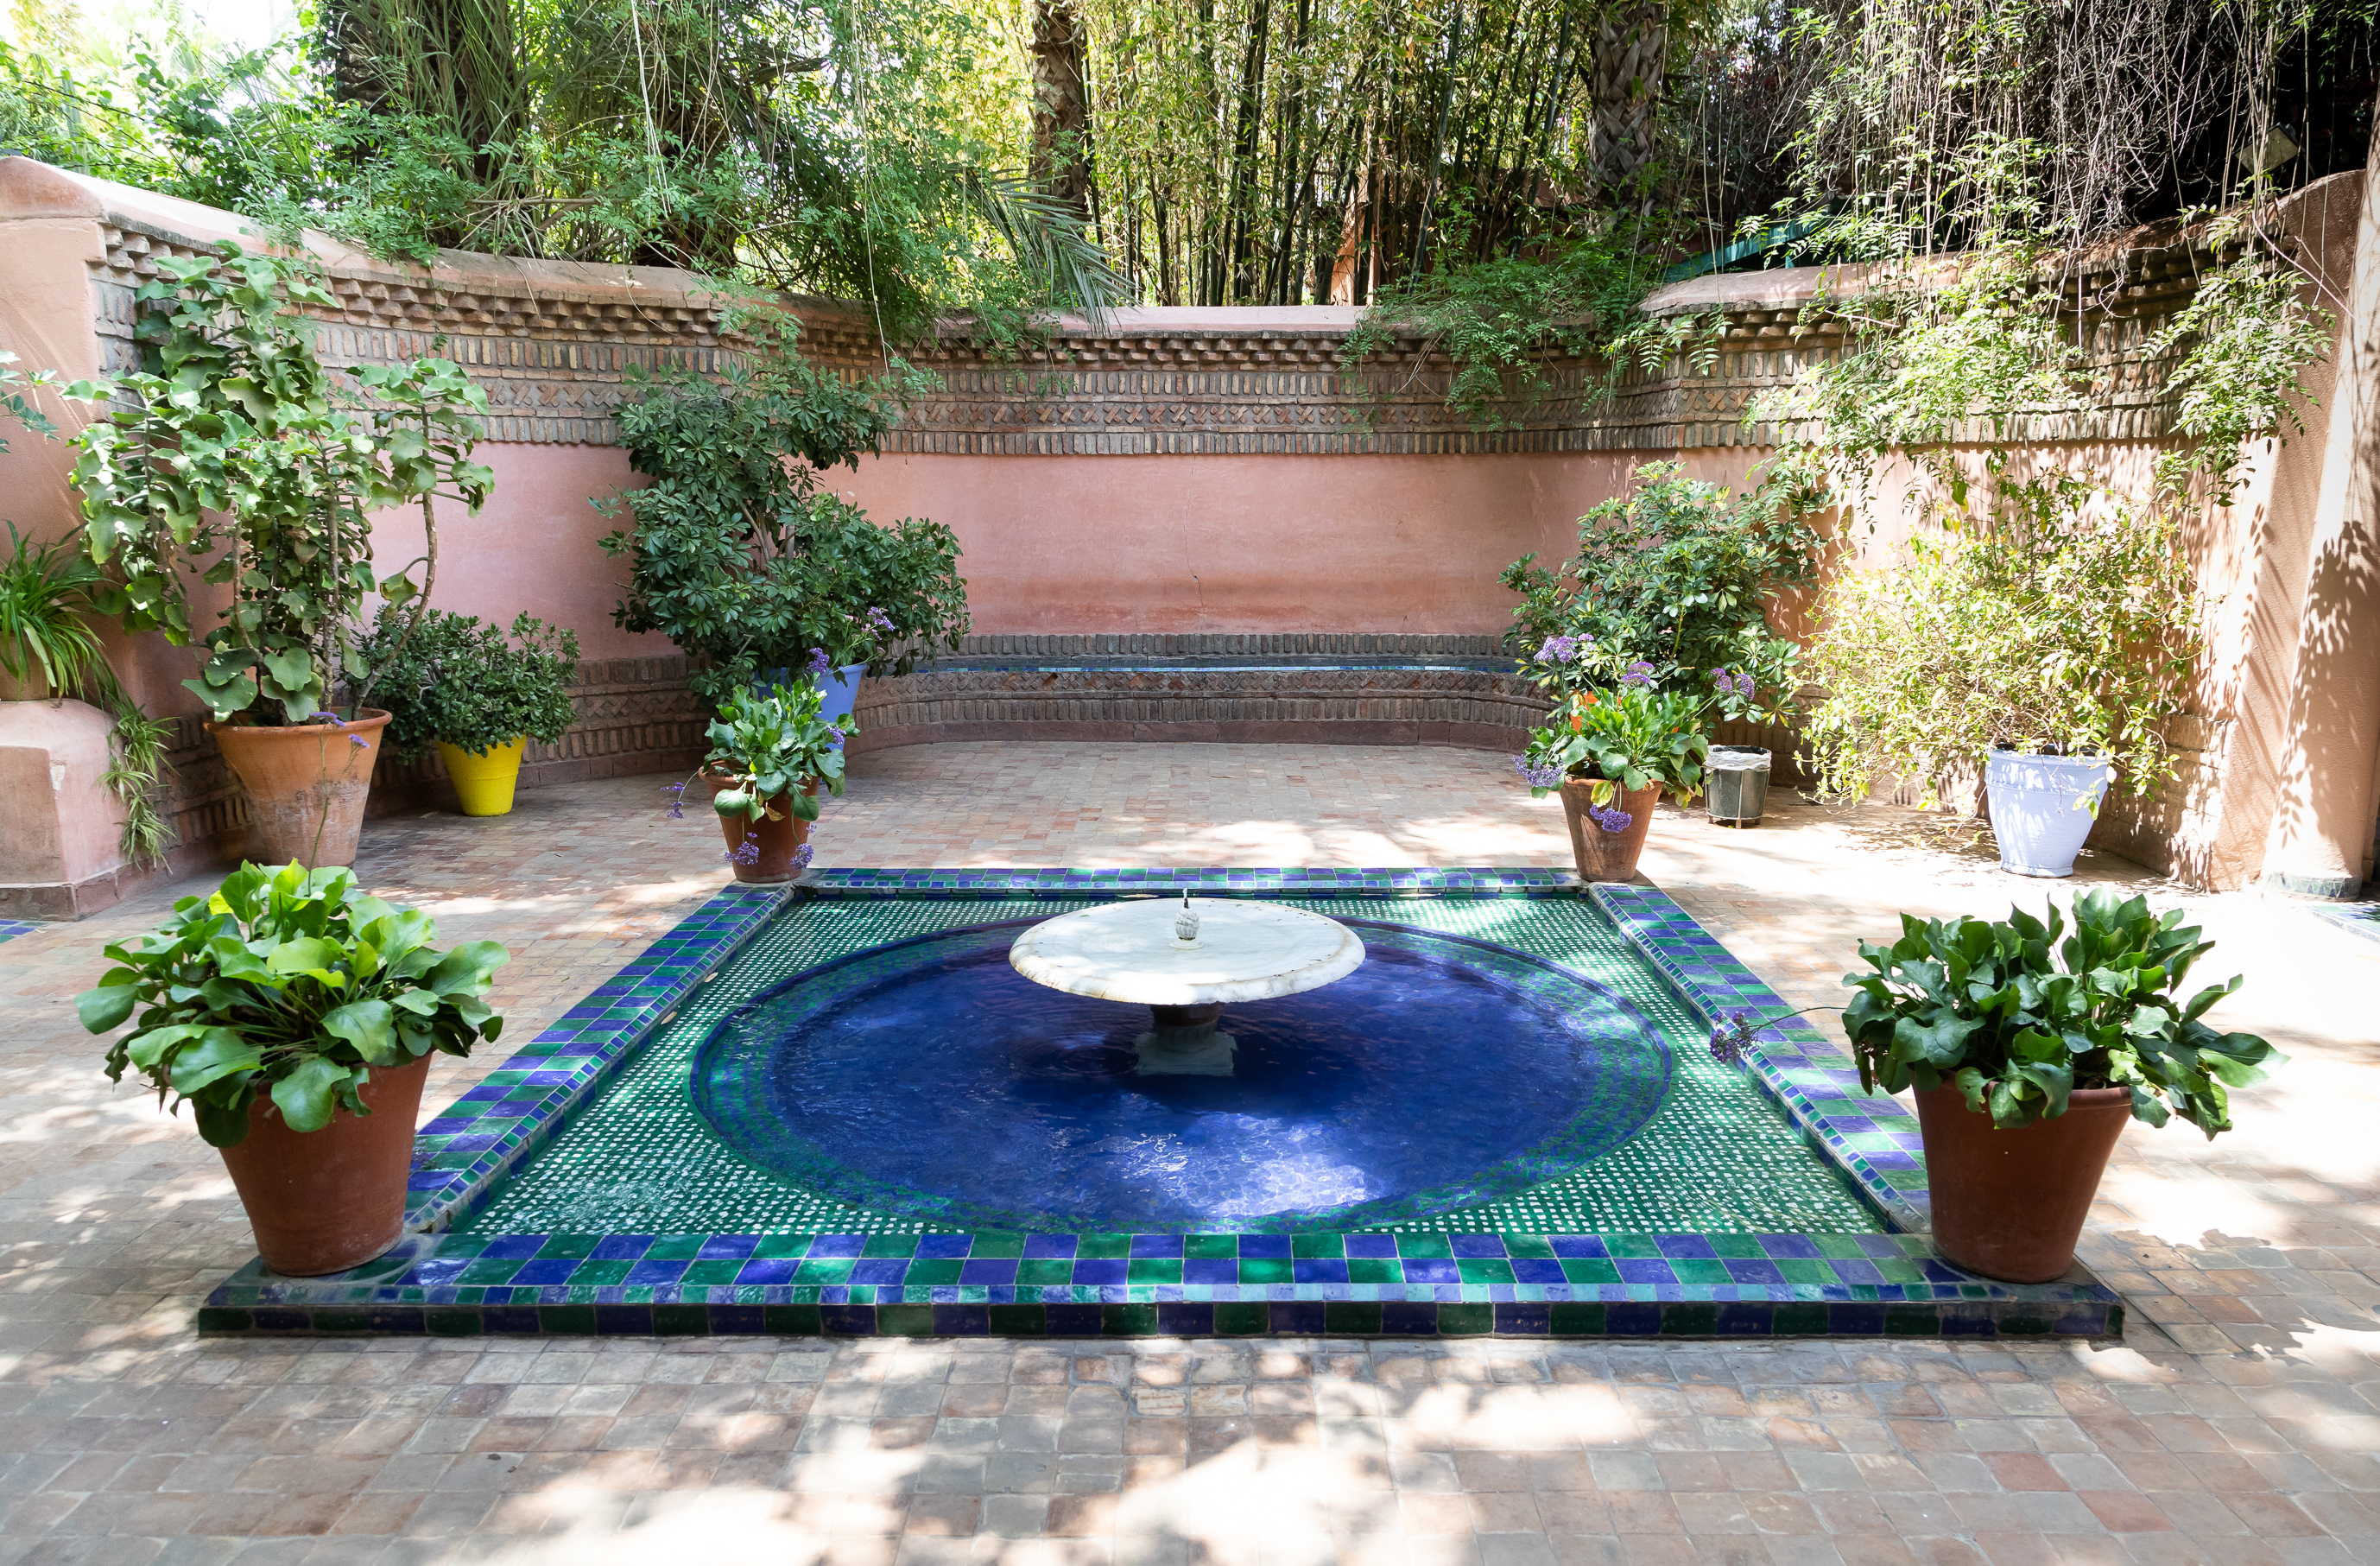 Le Jardin Secret Gardens, Marrakech.jpg